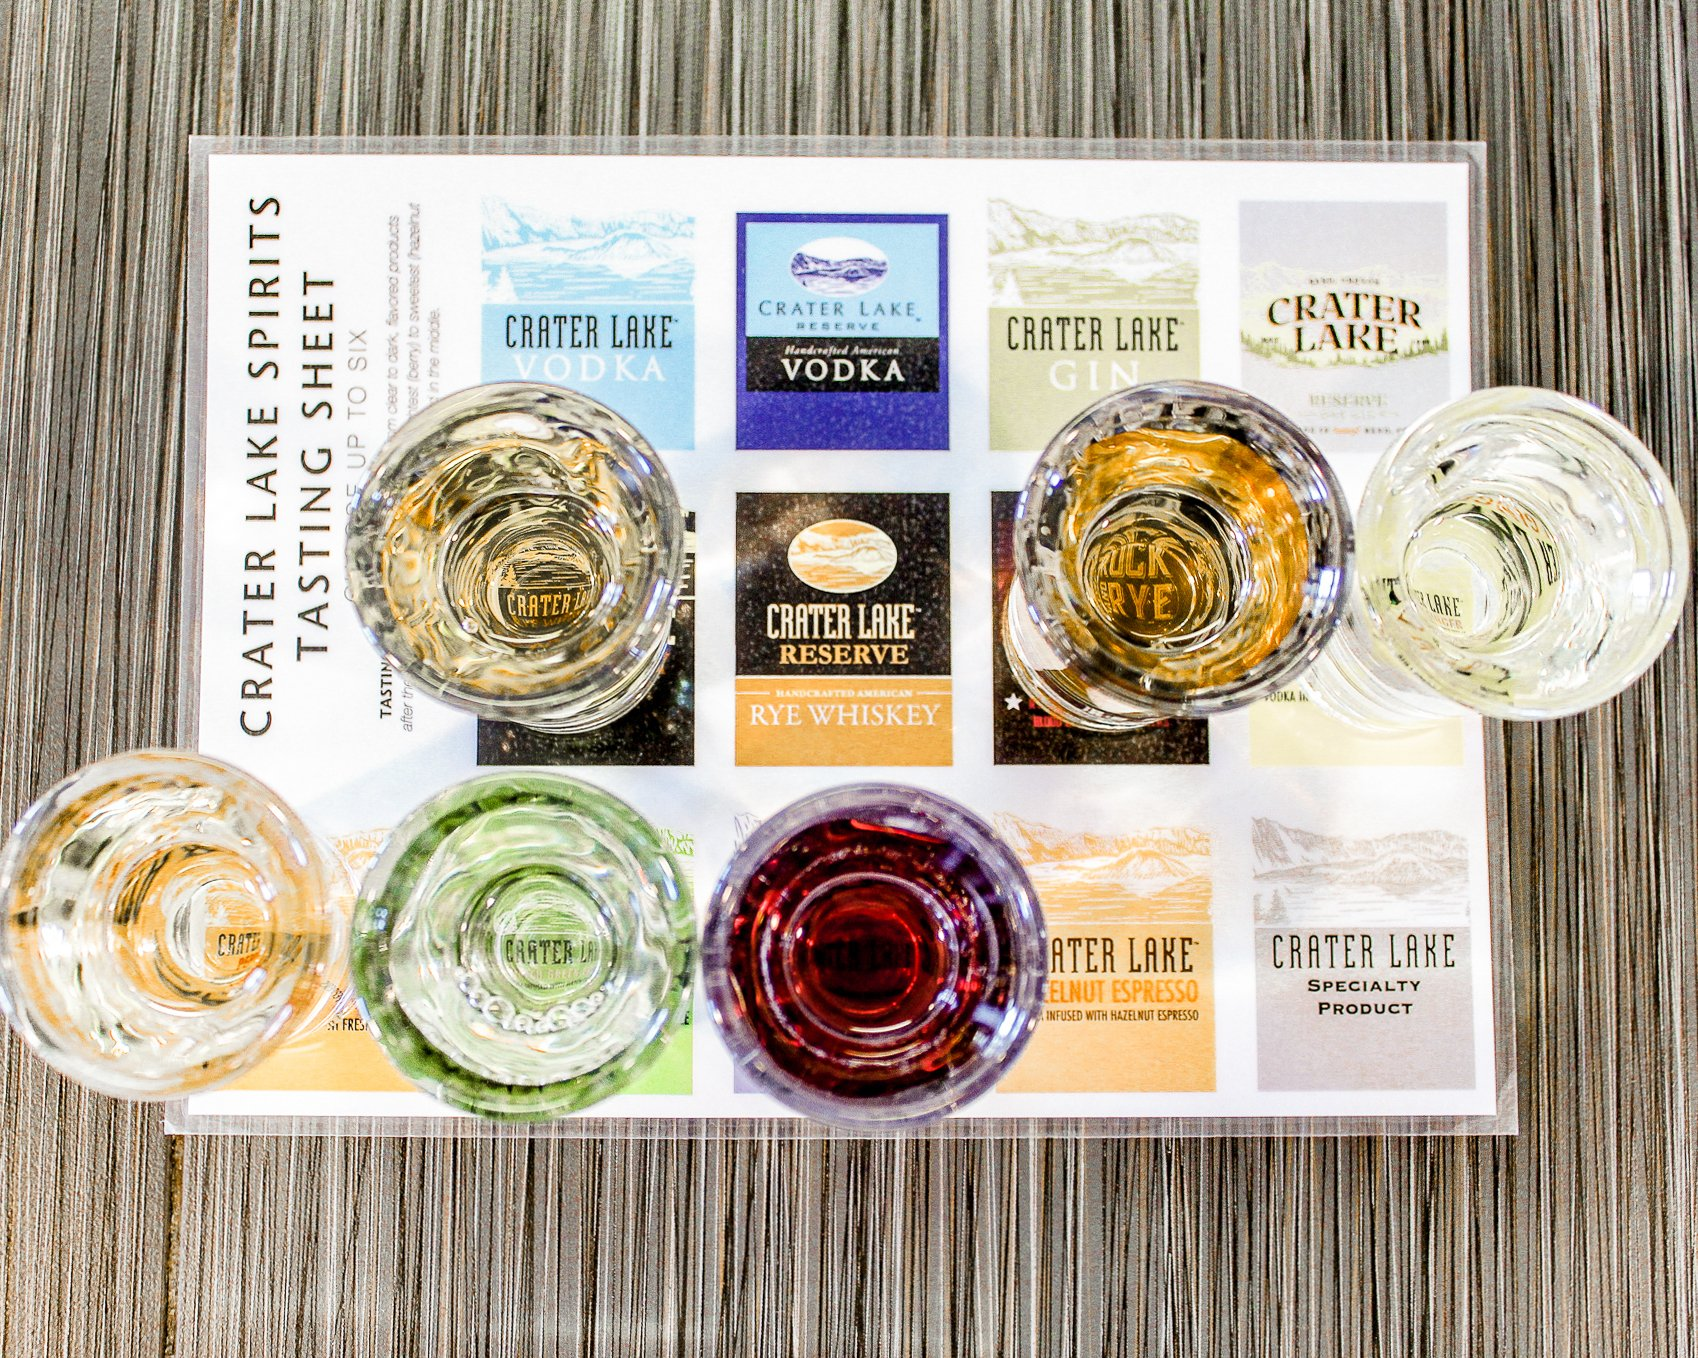 Shot glasses lined up on a menu with samples of Crater Lake Spirits flavored vodkas